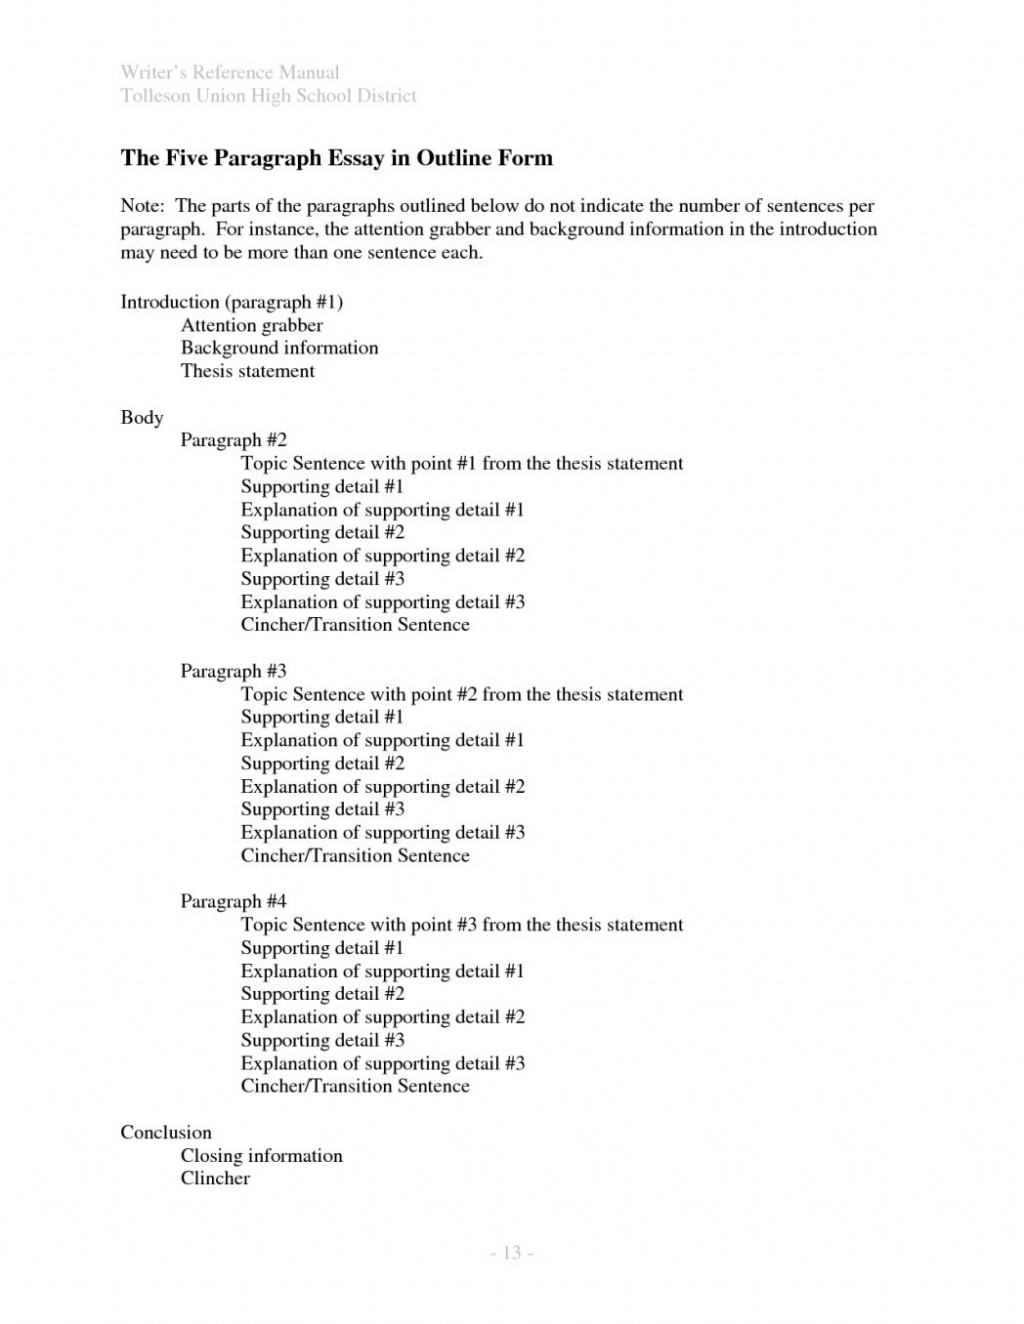 013 An Outline For Research Paper Argumentative Essay Abortion Inside High School Formidable Example Sample Of Topic How To Term A Large